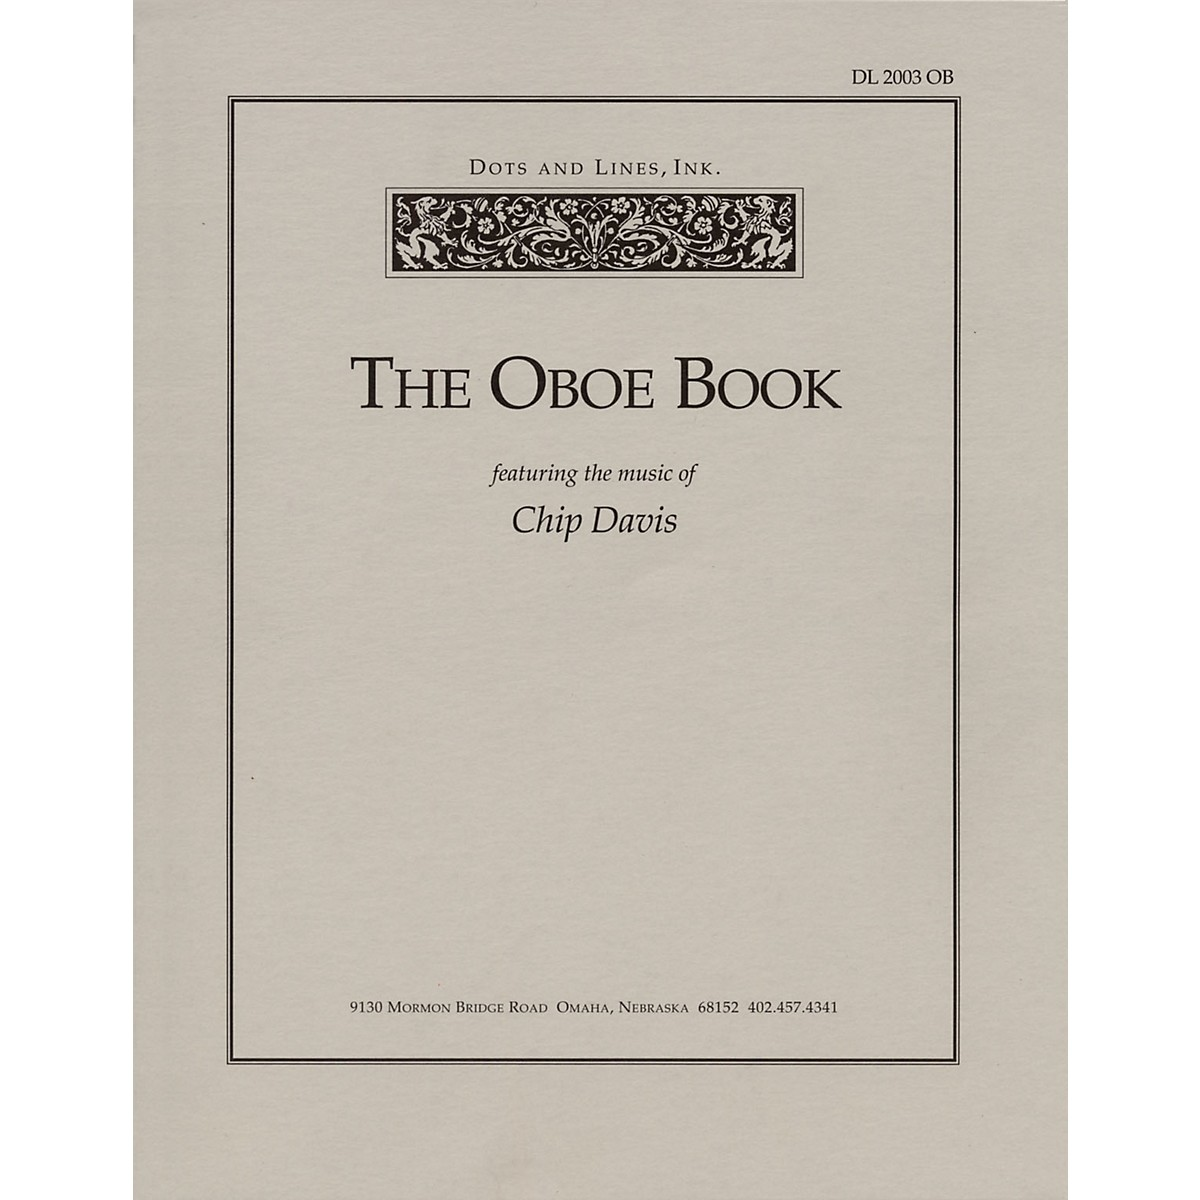 Dots and Lines, Ink. The Oboe Book (Featuring the Music of Chip Davis) Book Series